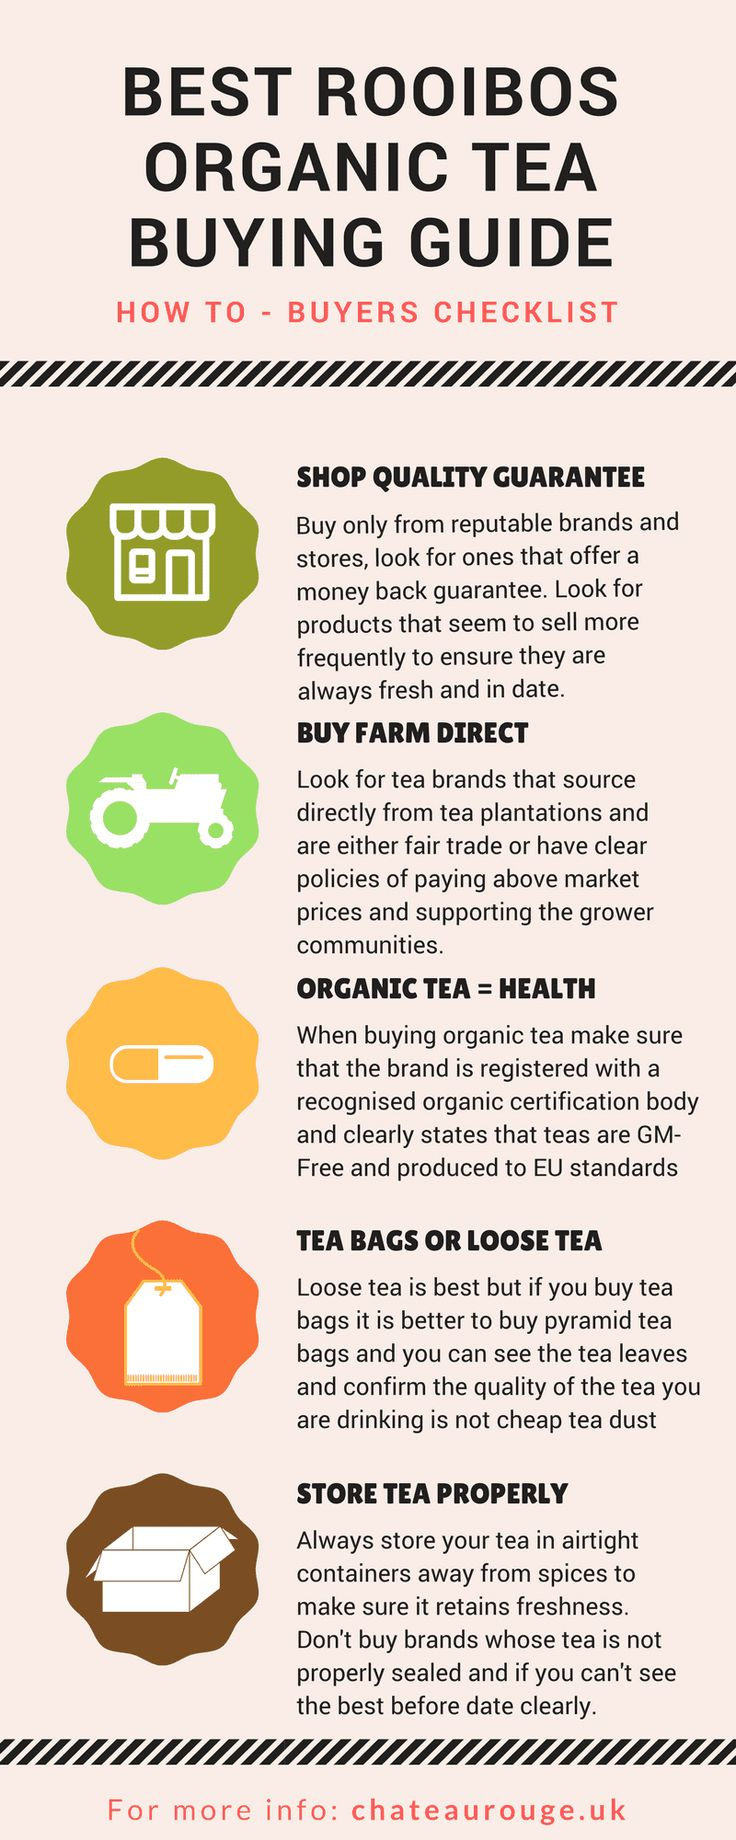 Drinking our fair share of brews over the last 40 years, we have discovered a few things about what makes a really good Rooibos and how to determine if you are buying the freshest and best tea brands online or from any health food or fine food store. This http://teapauses.com/healthiest-teas-to-drink/best-tea-for-a-cold-and-sore-throat/